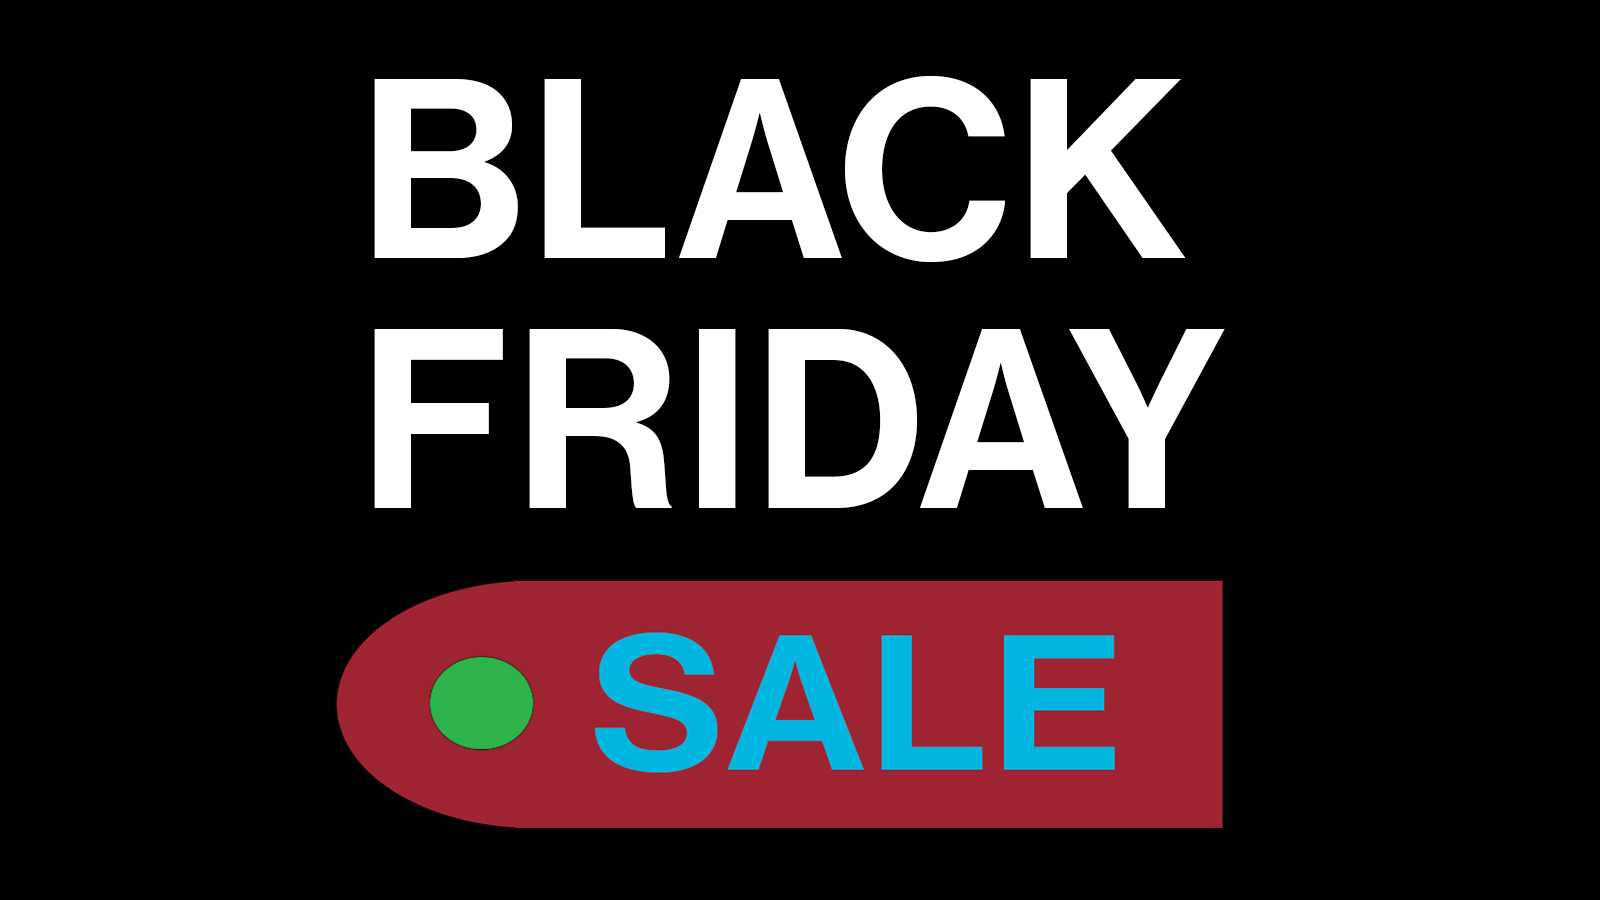 Black Friday Sale Restore Black Friday Sale Solano Habitat For Humanity